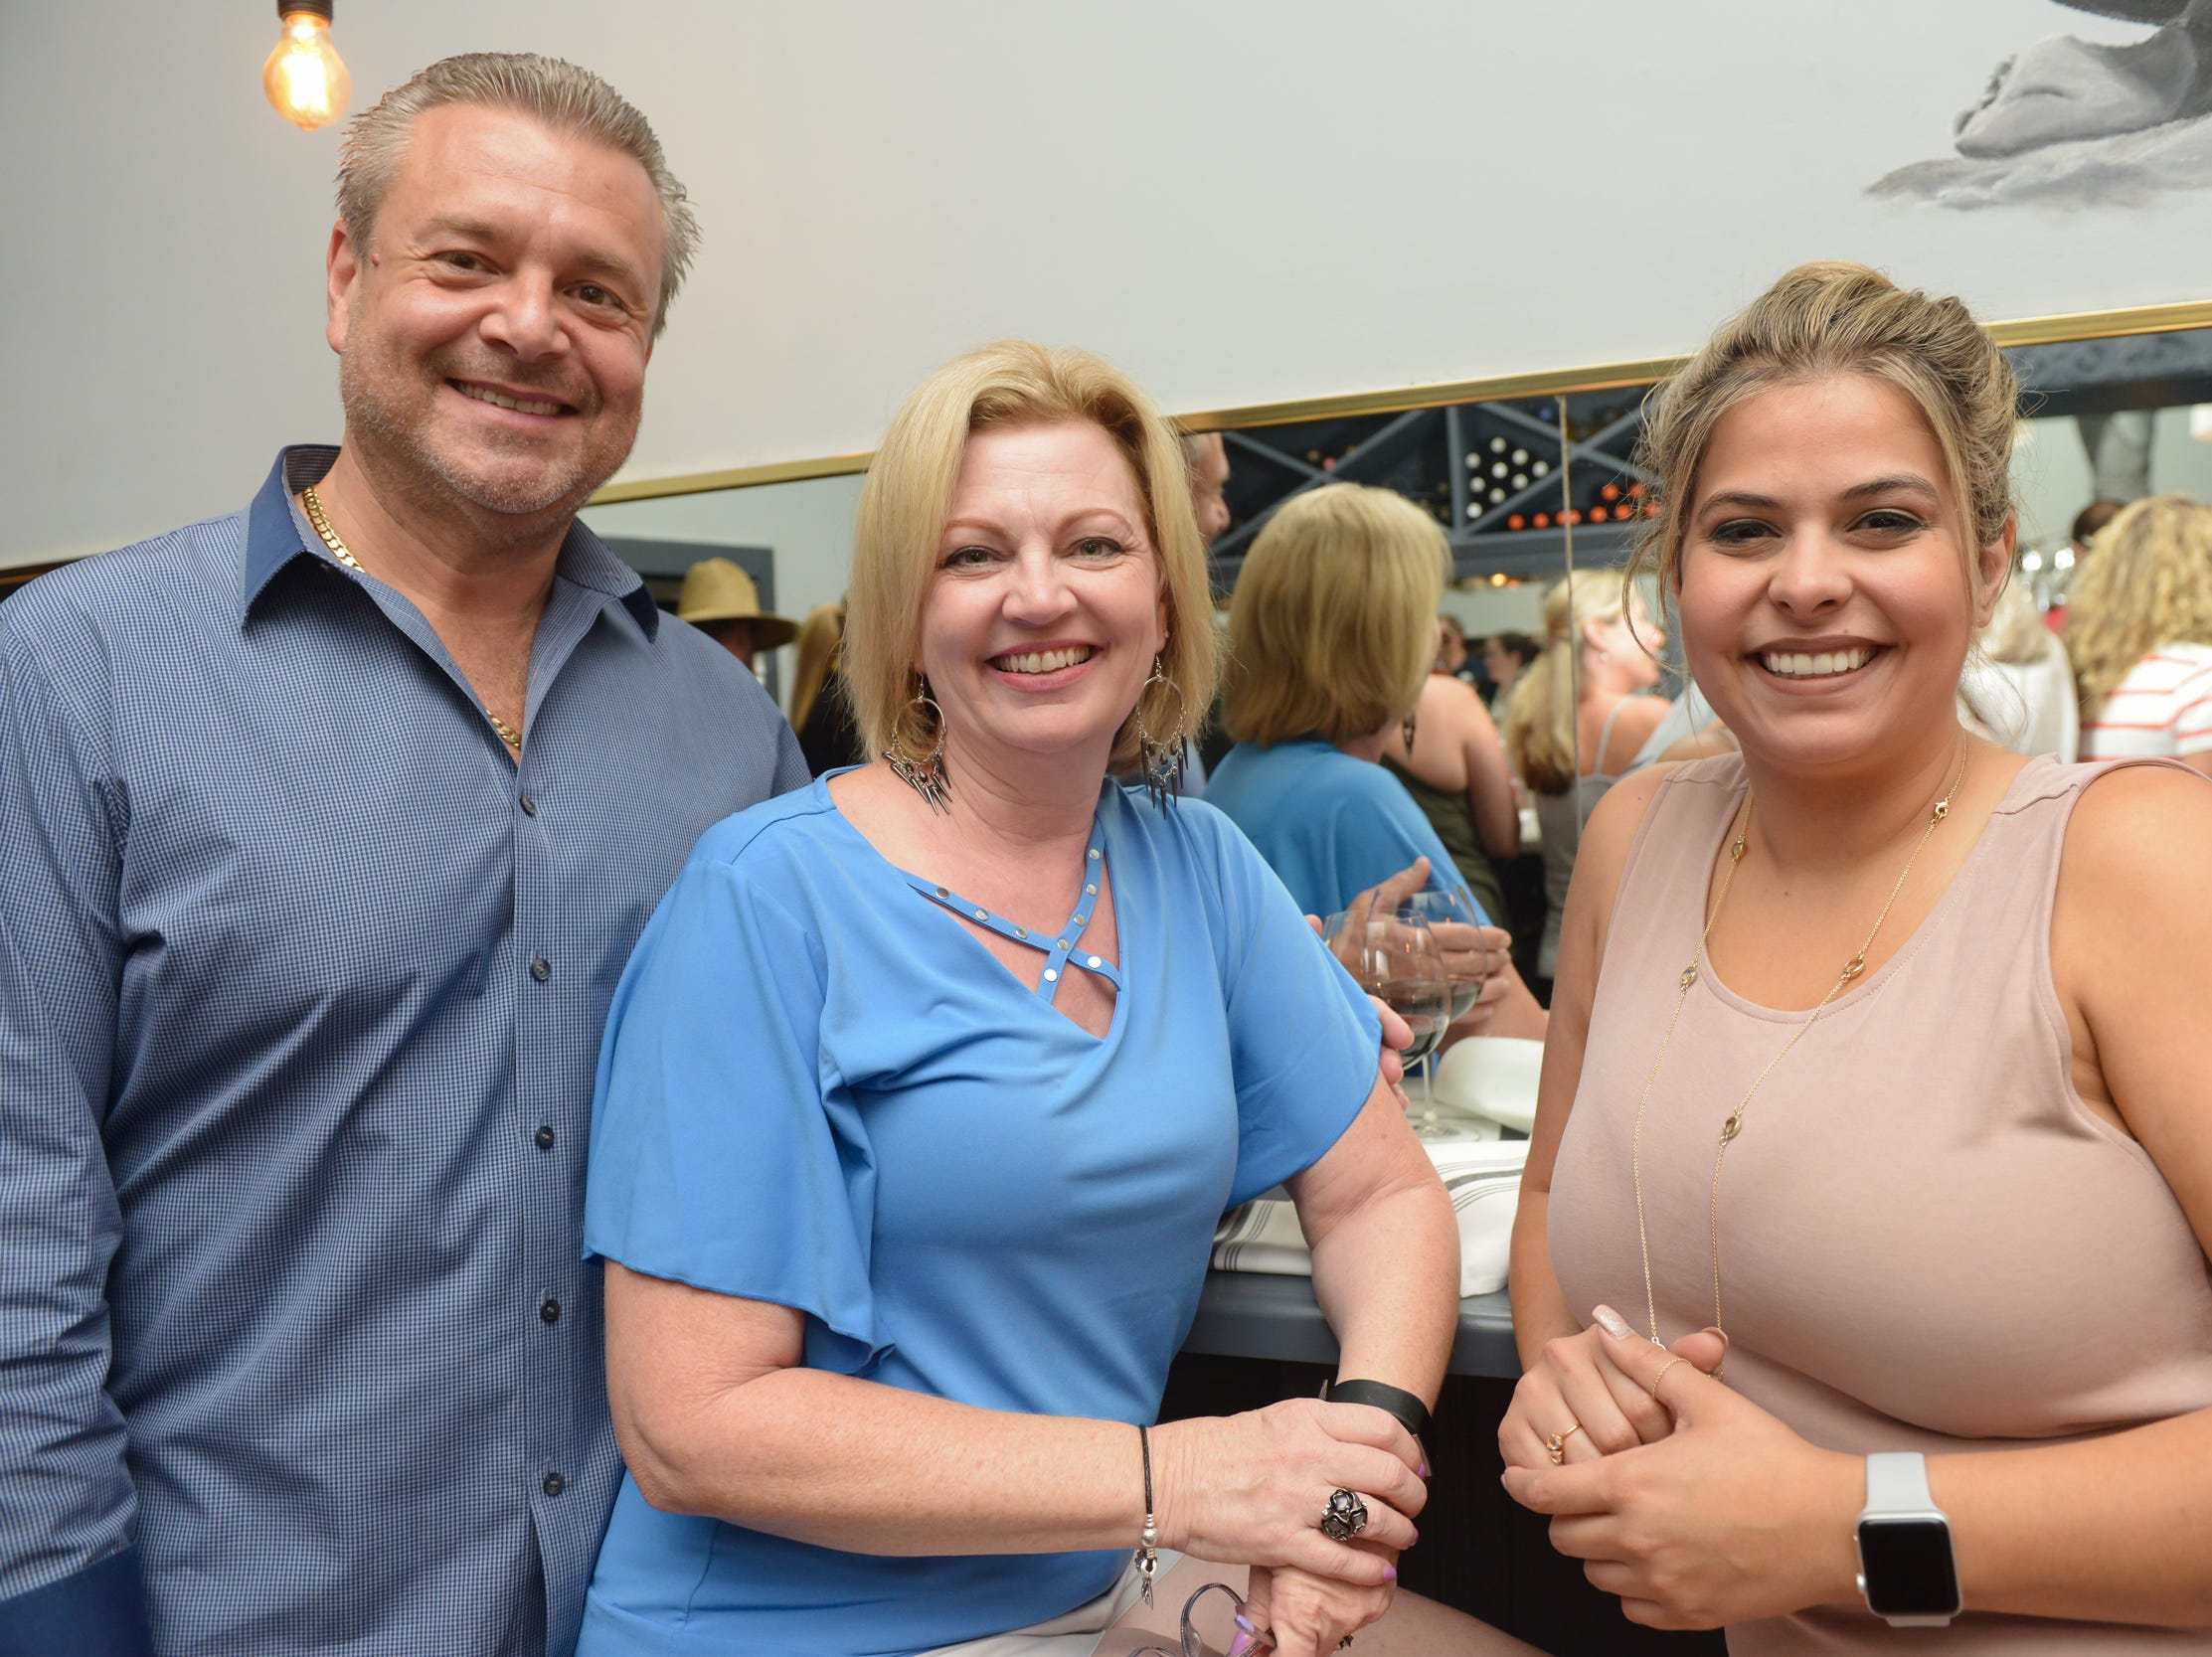 Richard Mazo, Keturah Mazo and Colleen Kuffel at a community gathering to kick off Shark Week, hosted by Florida Today at Crush XI in downtown Melbourne.